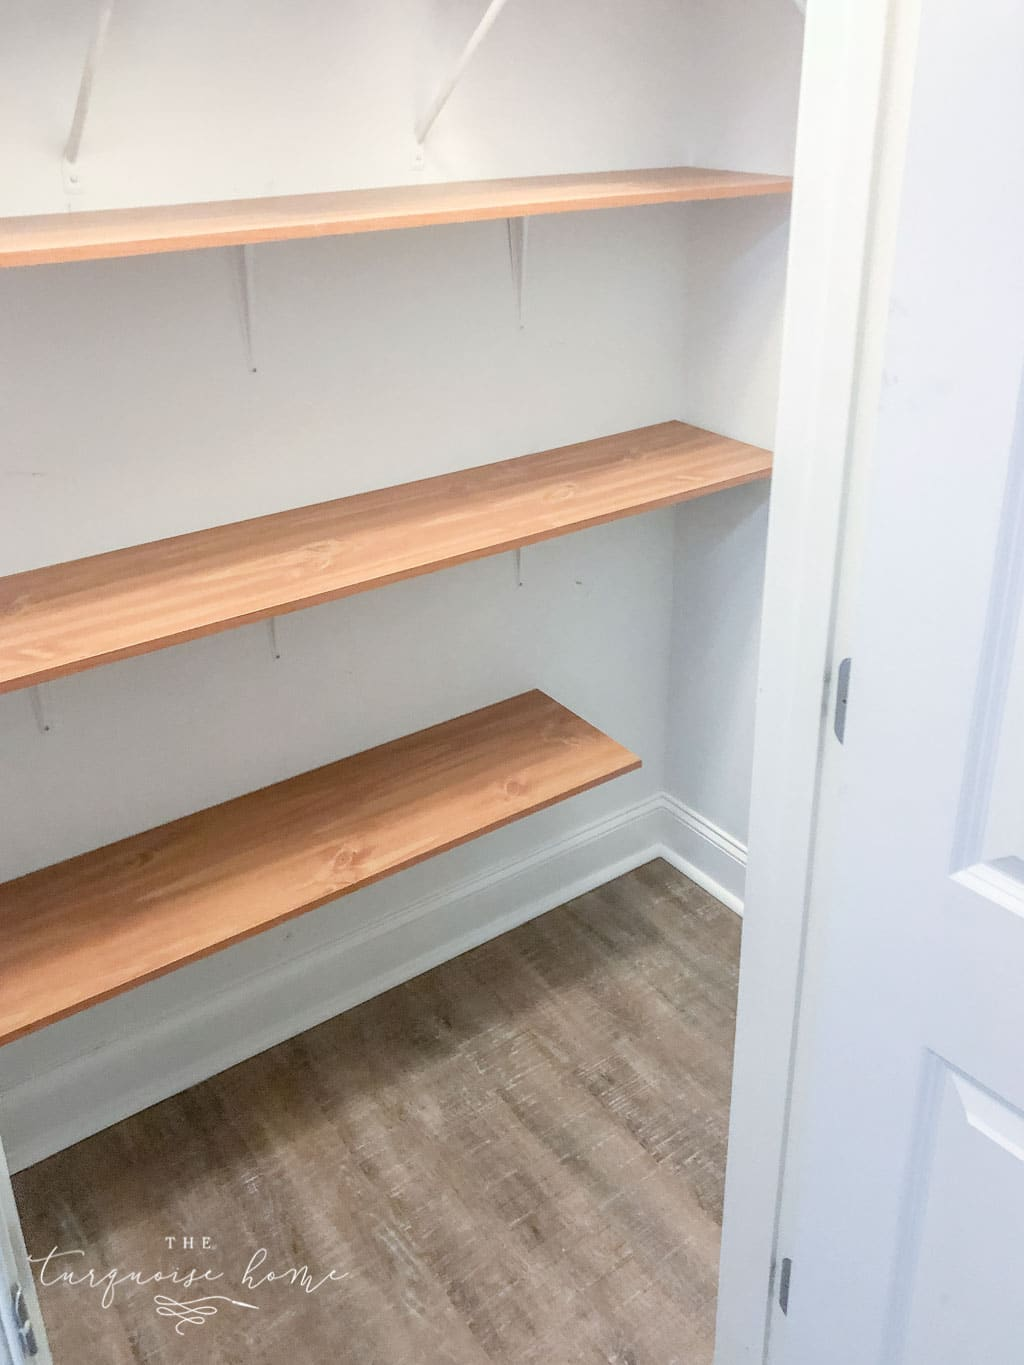 Utilize vertical space in a closet to make a DIY Pantry space!